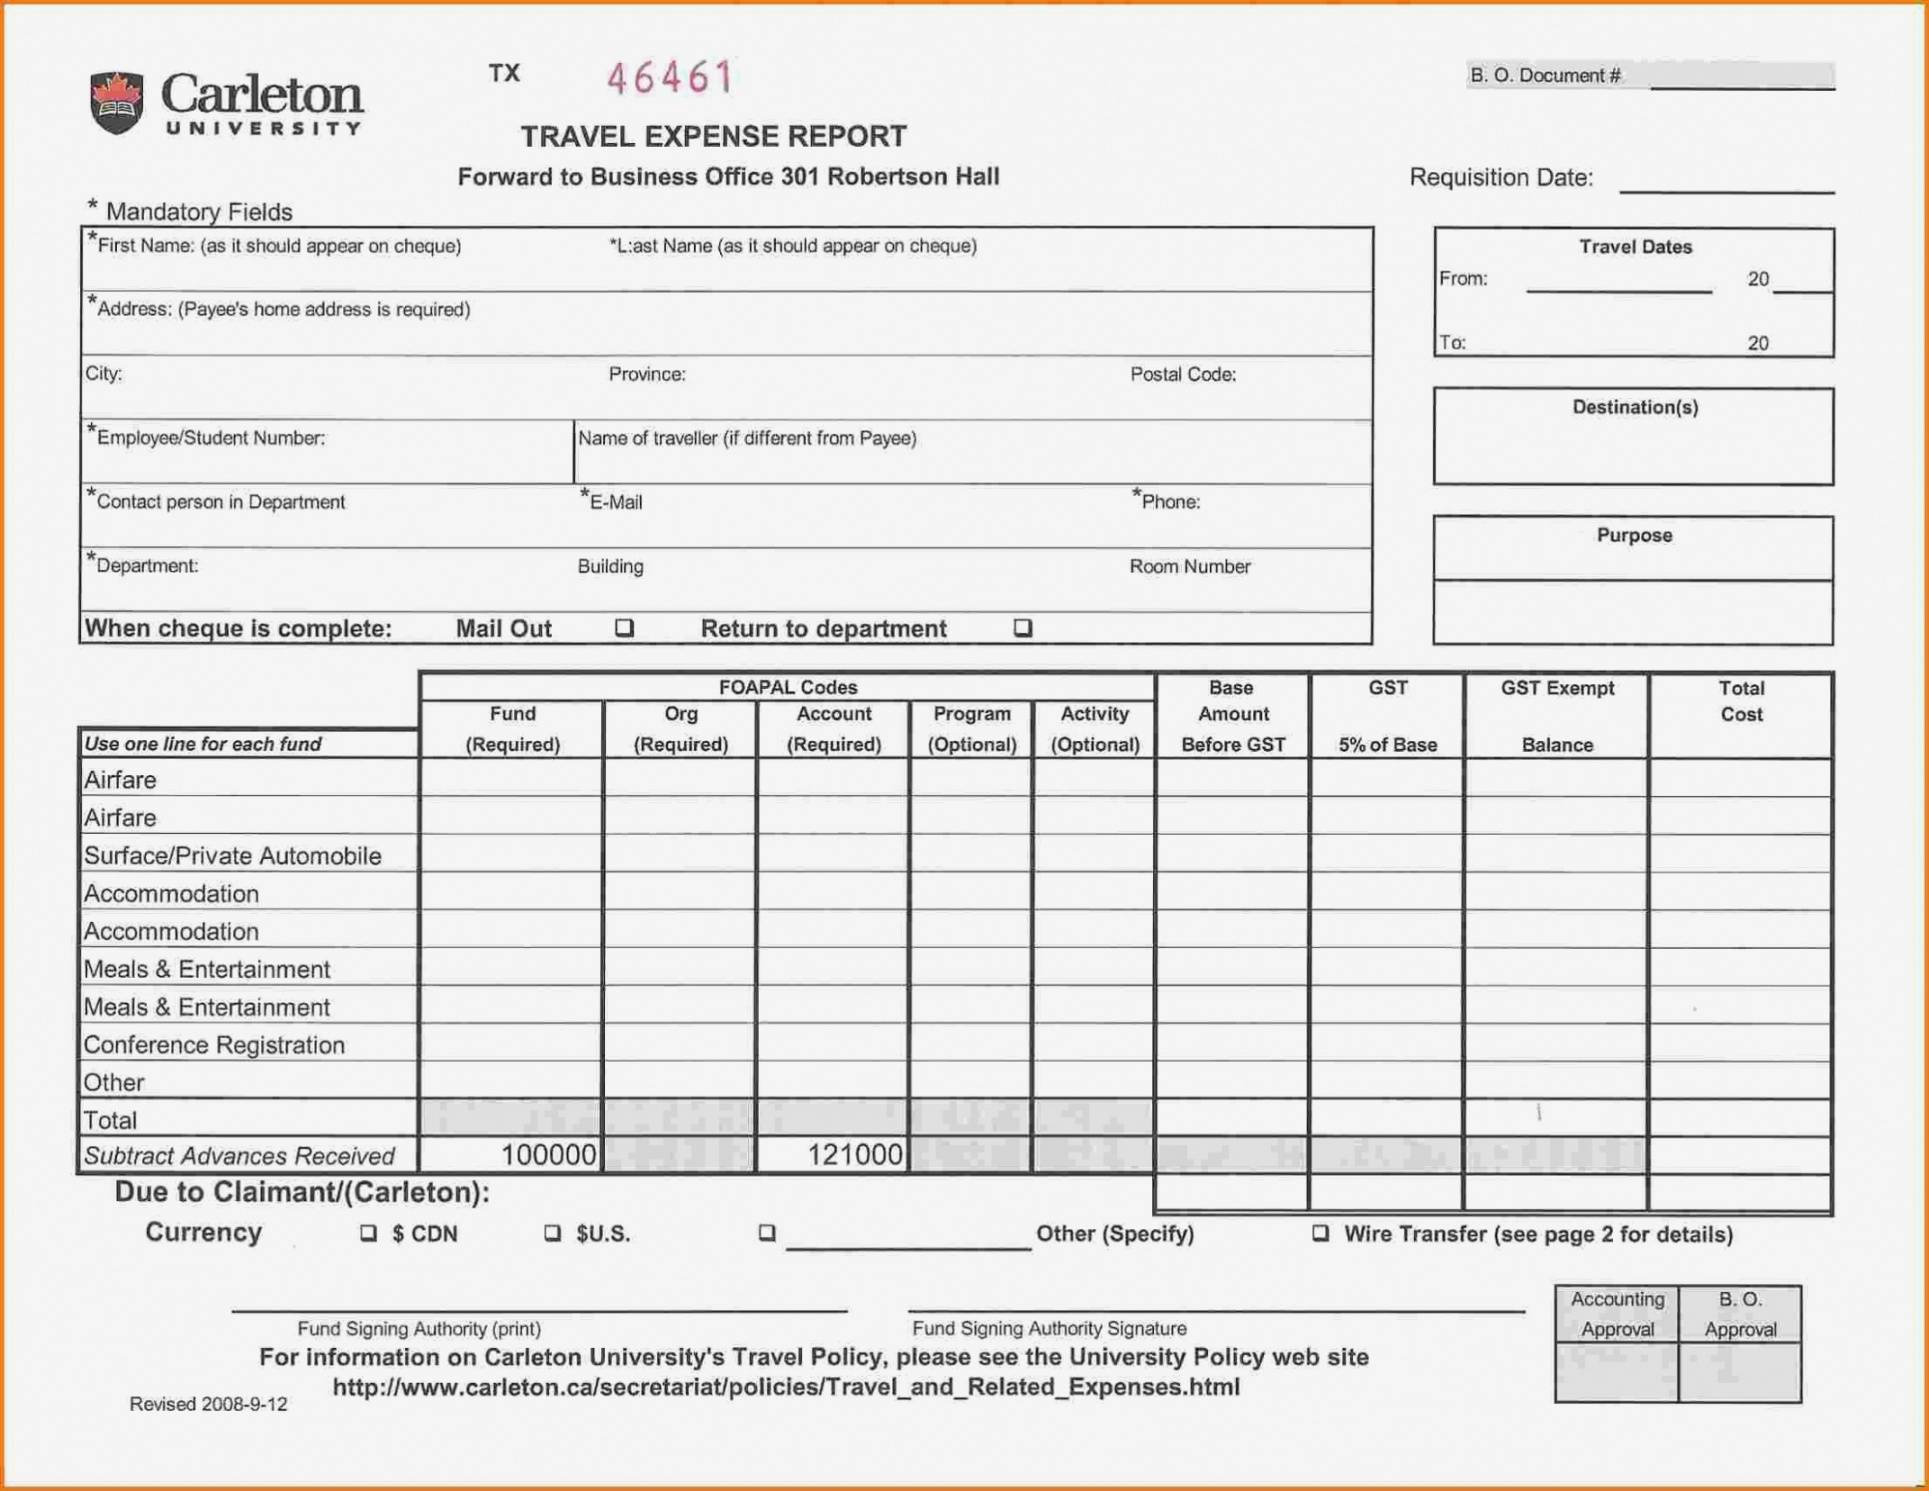 Printable Air Balance Report Form Mersnproforum Form For Air Balance Report Template